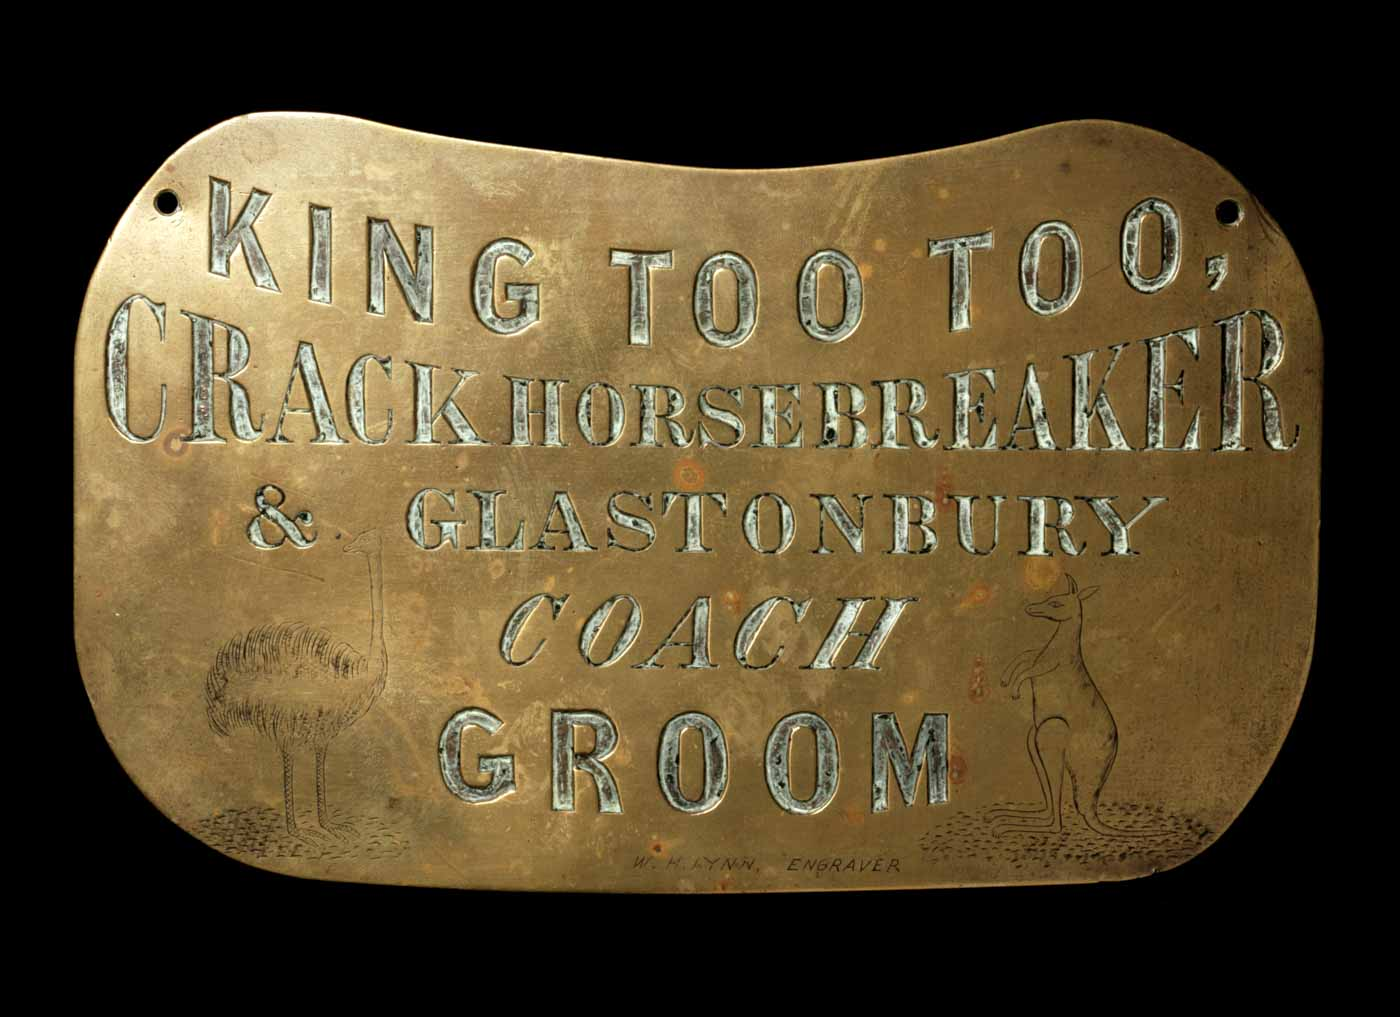 Breastplate engraved with text 'King Too Too, crack horsebreaker & Glastonbury coach and groom' and images of a kangaroo and emu. - click to view larger image